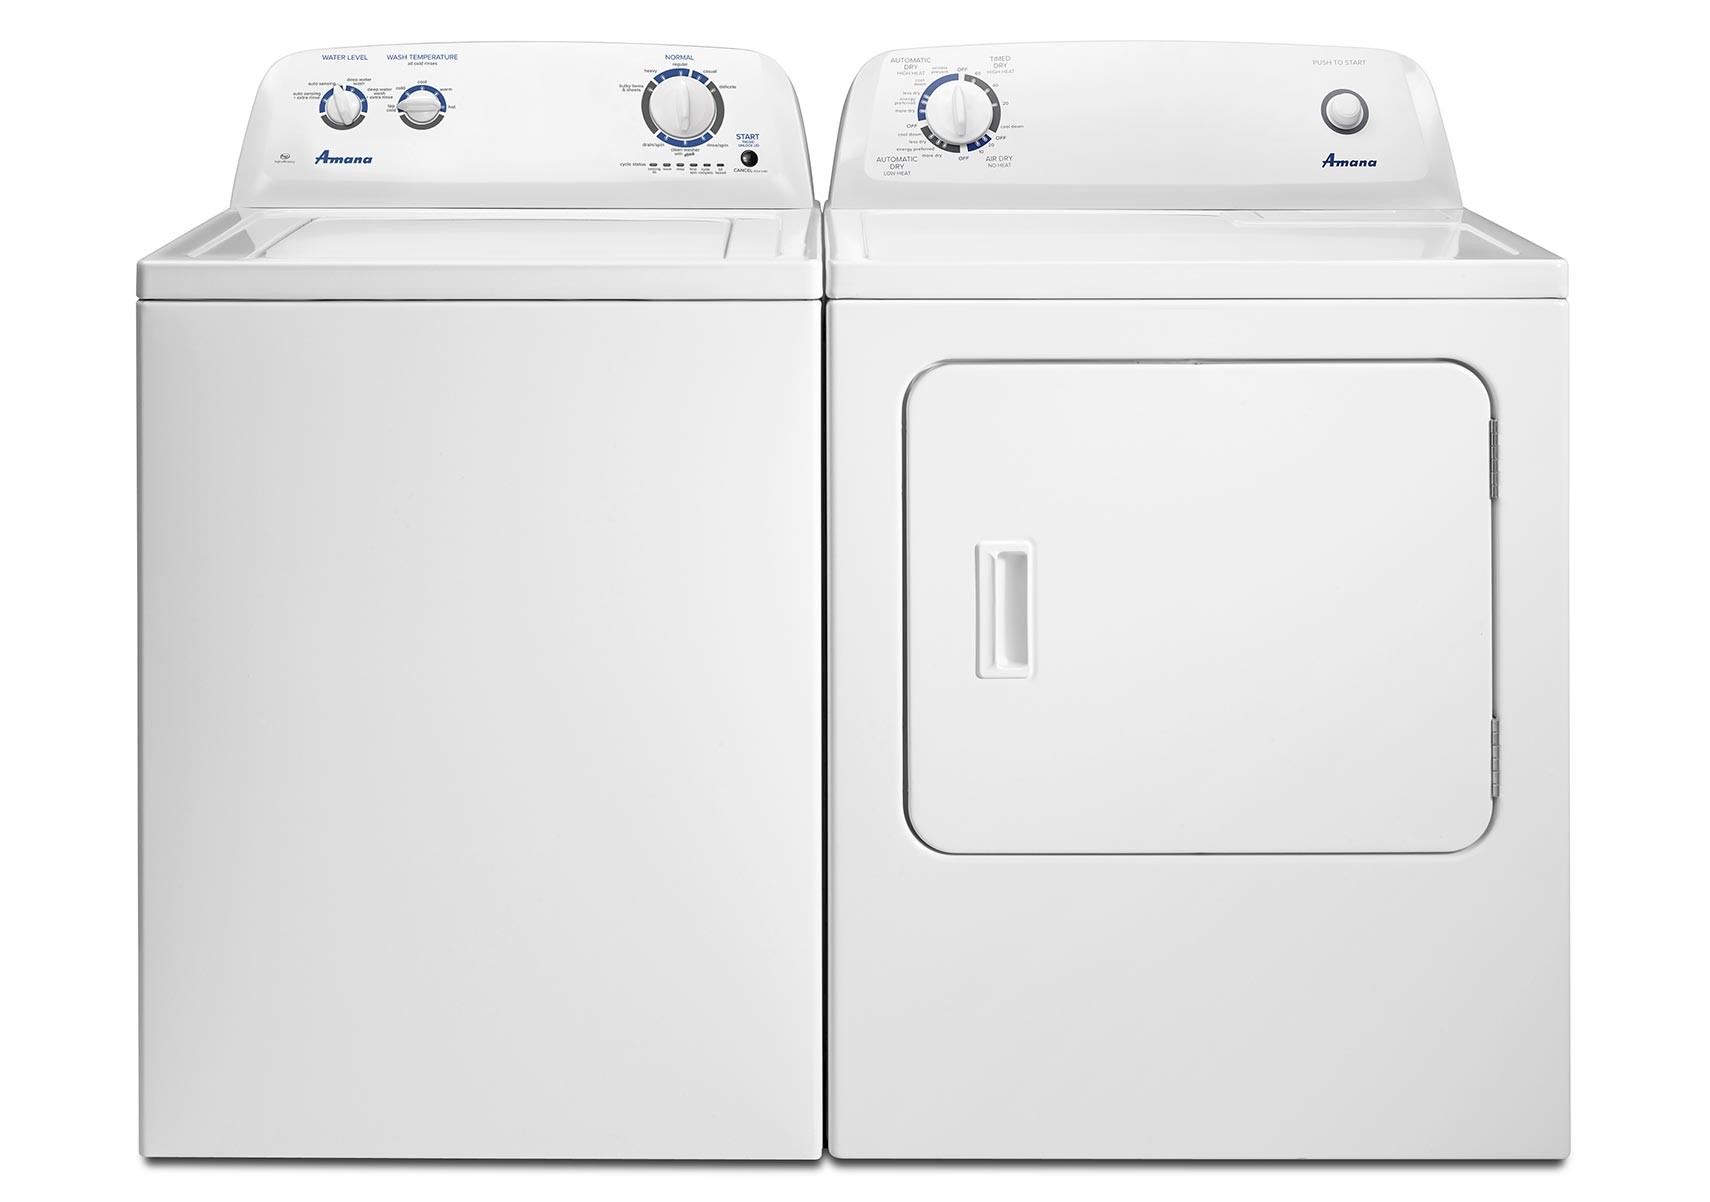 Amana Washer Dryer Pair Central Rent 2 Own